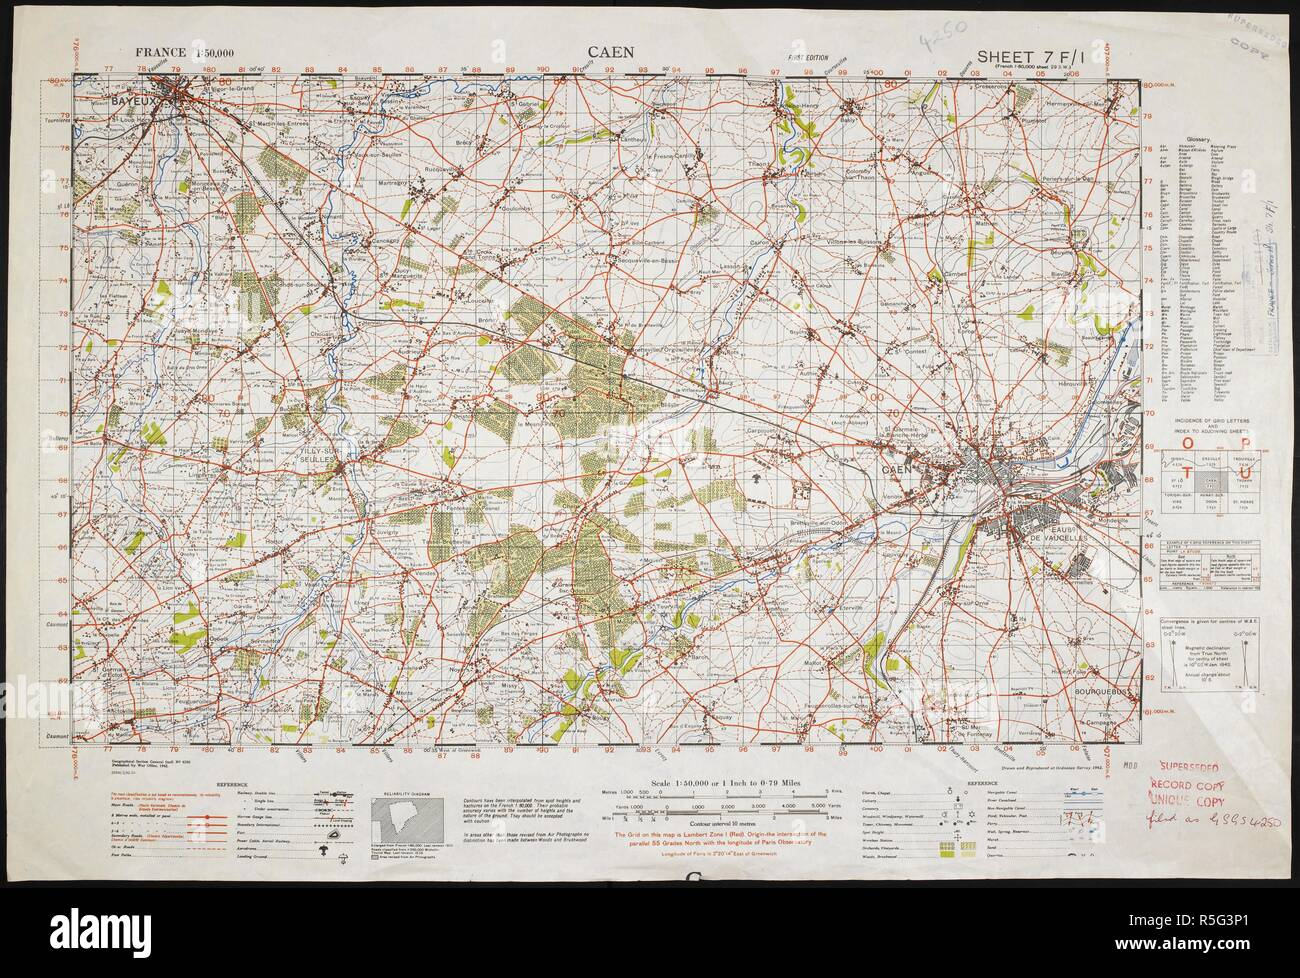 Caen France Carte Map Caen France Photos Map Caen France Images Alamy